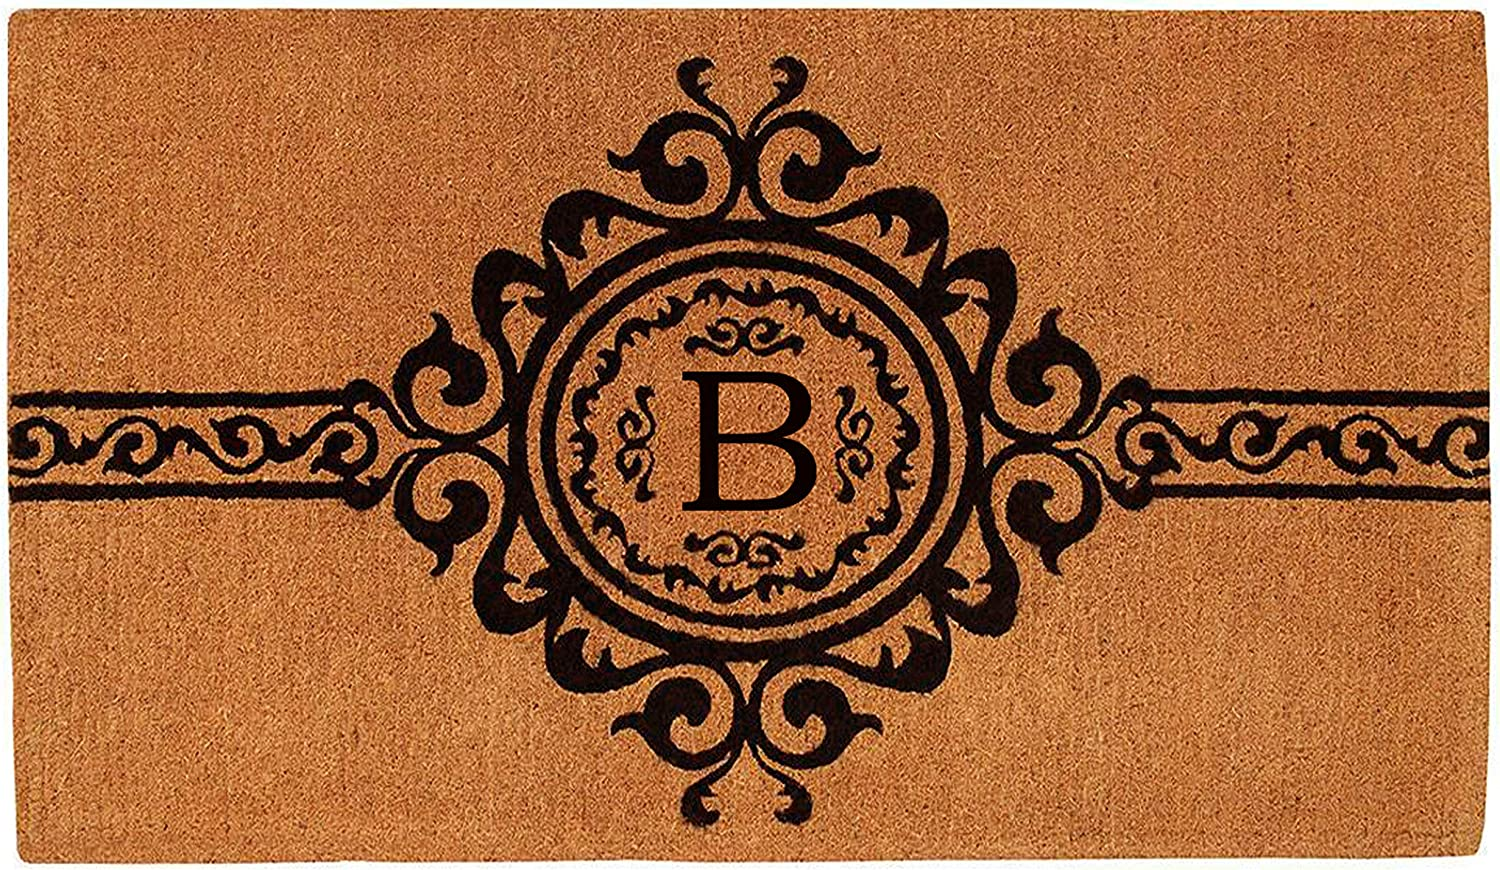 Calloway Mills 180072436B Garbo Monogram Extra-Thick Doormat Seattle Mall Opening large release sale 2'